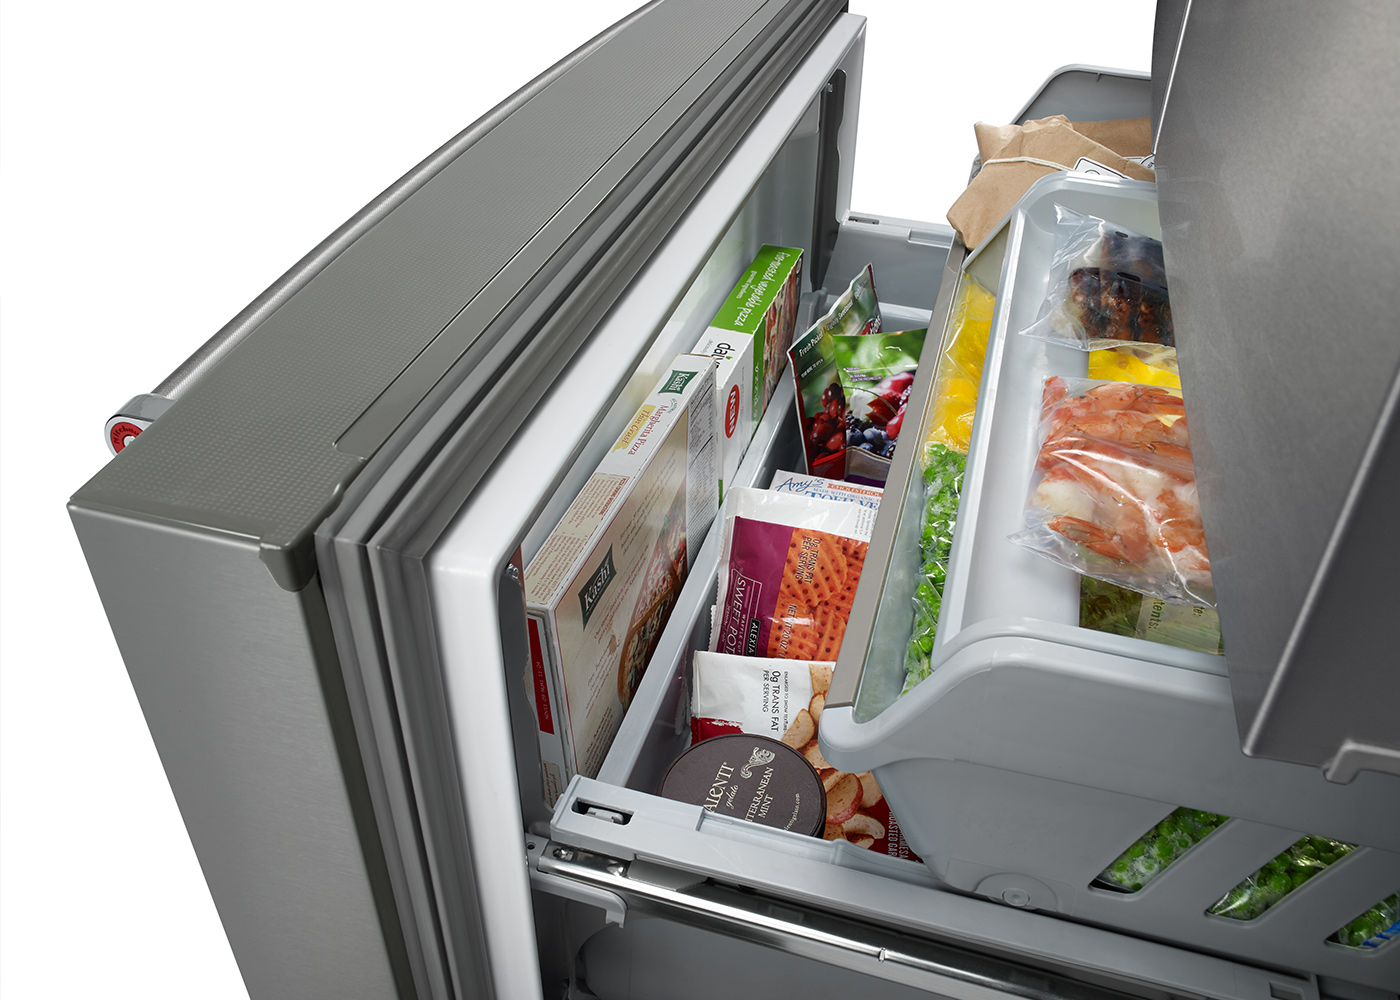 si-freezer-drawer